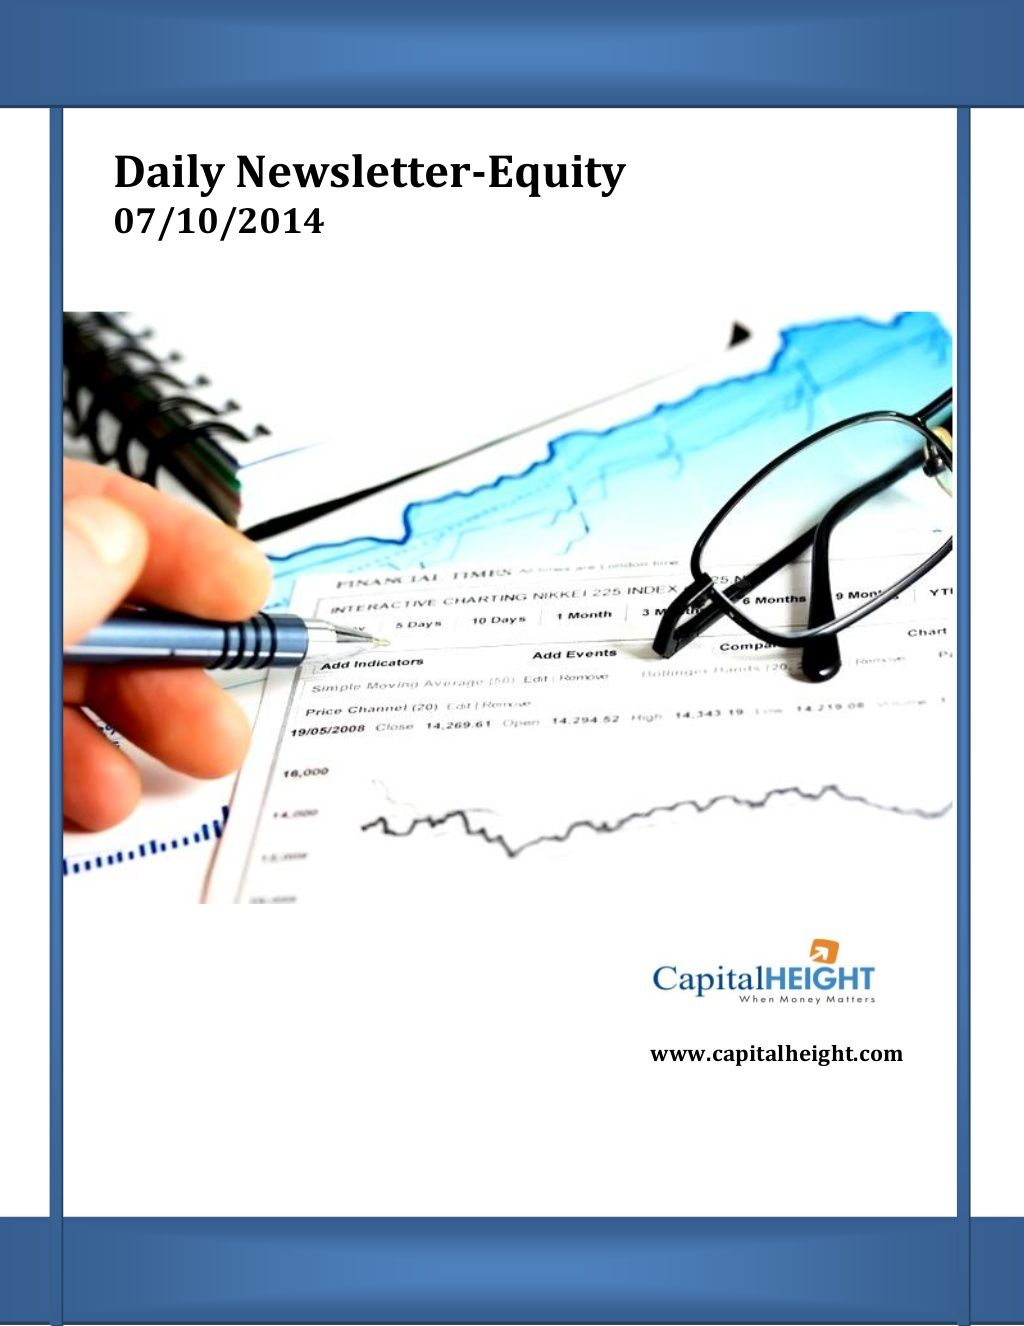 Daily Stock Market Newsletter Report By Money Capitalheight Research Pvt Ltd Stock Market Stock Trading Strategies Intraday Trading